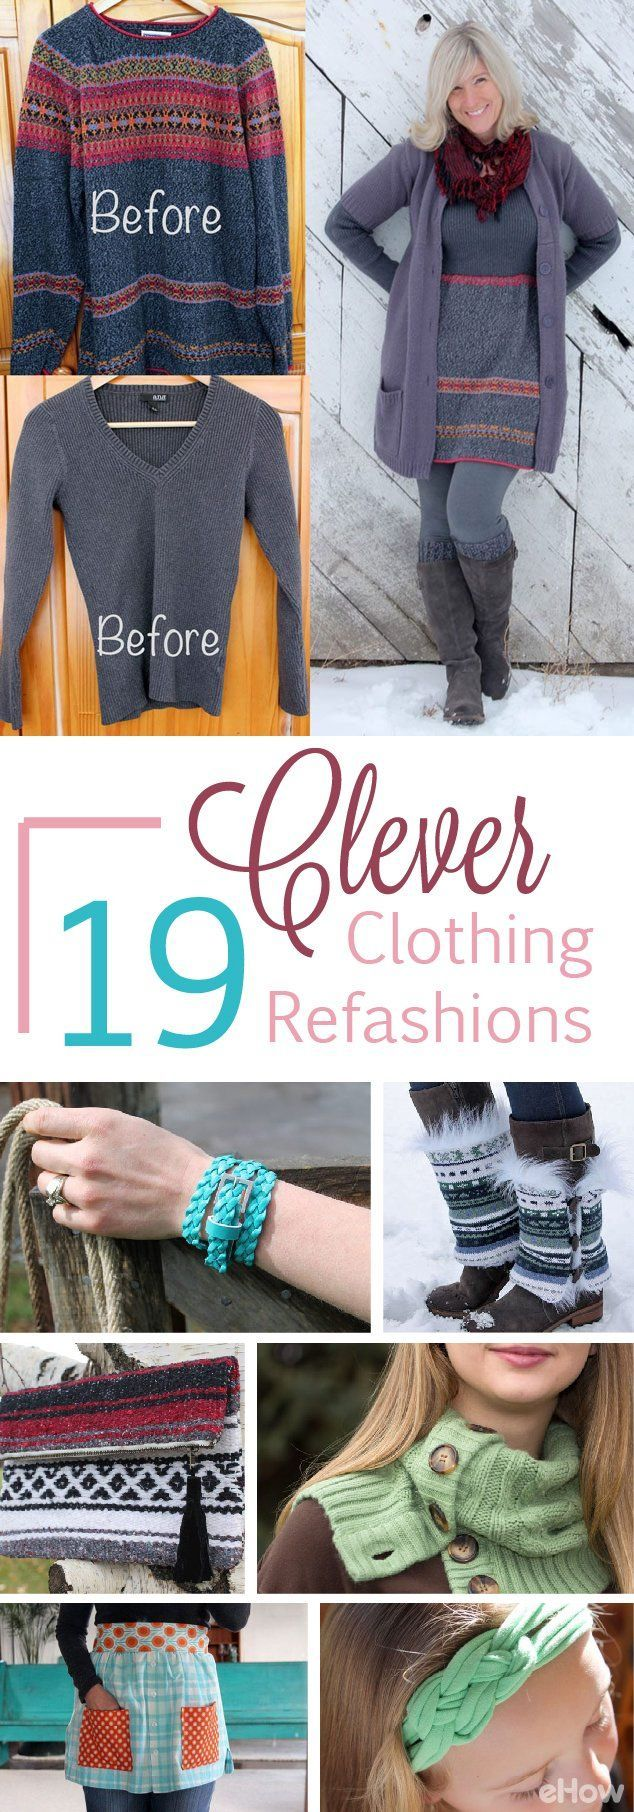 Refashioning old clothes into new, beautiful pieces makes shopping at the thrift store (or even in your own closet) feel like a gold mine! Update your wardrobe without spending a lot of money with these clever refashion, upcycle ideas: http://www.ehow.com/how_12342973_clever-ways-refashion-clothes.html?utm_source=pinterest.com&utm_medium=referral&utm_content=freestyle&utm_campaign=fanpage